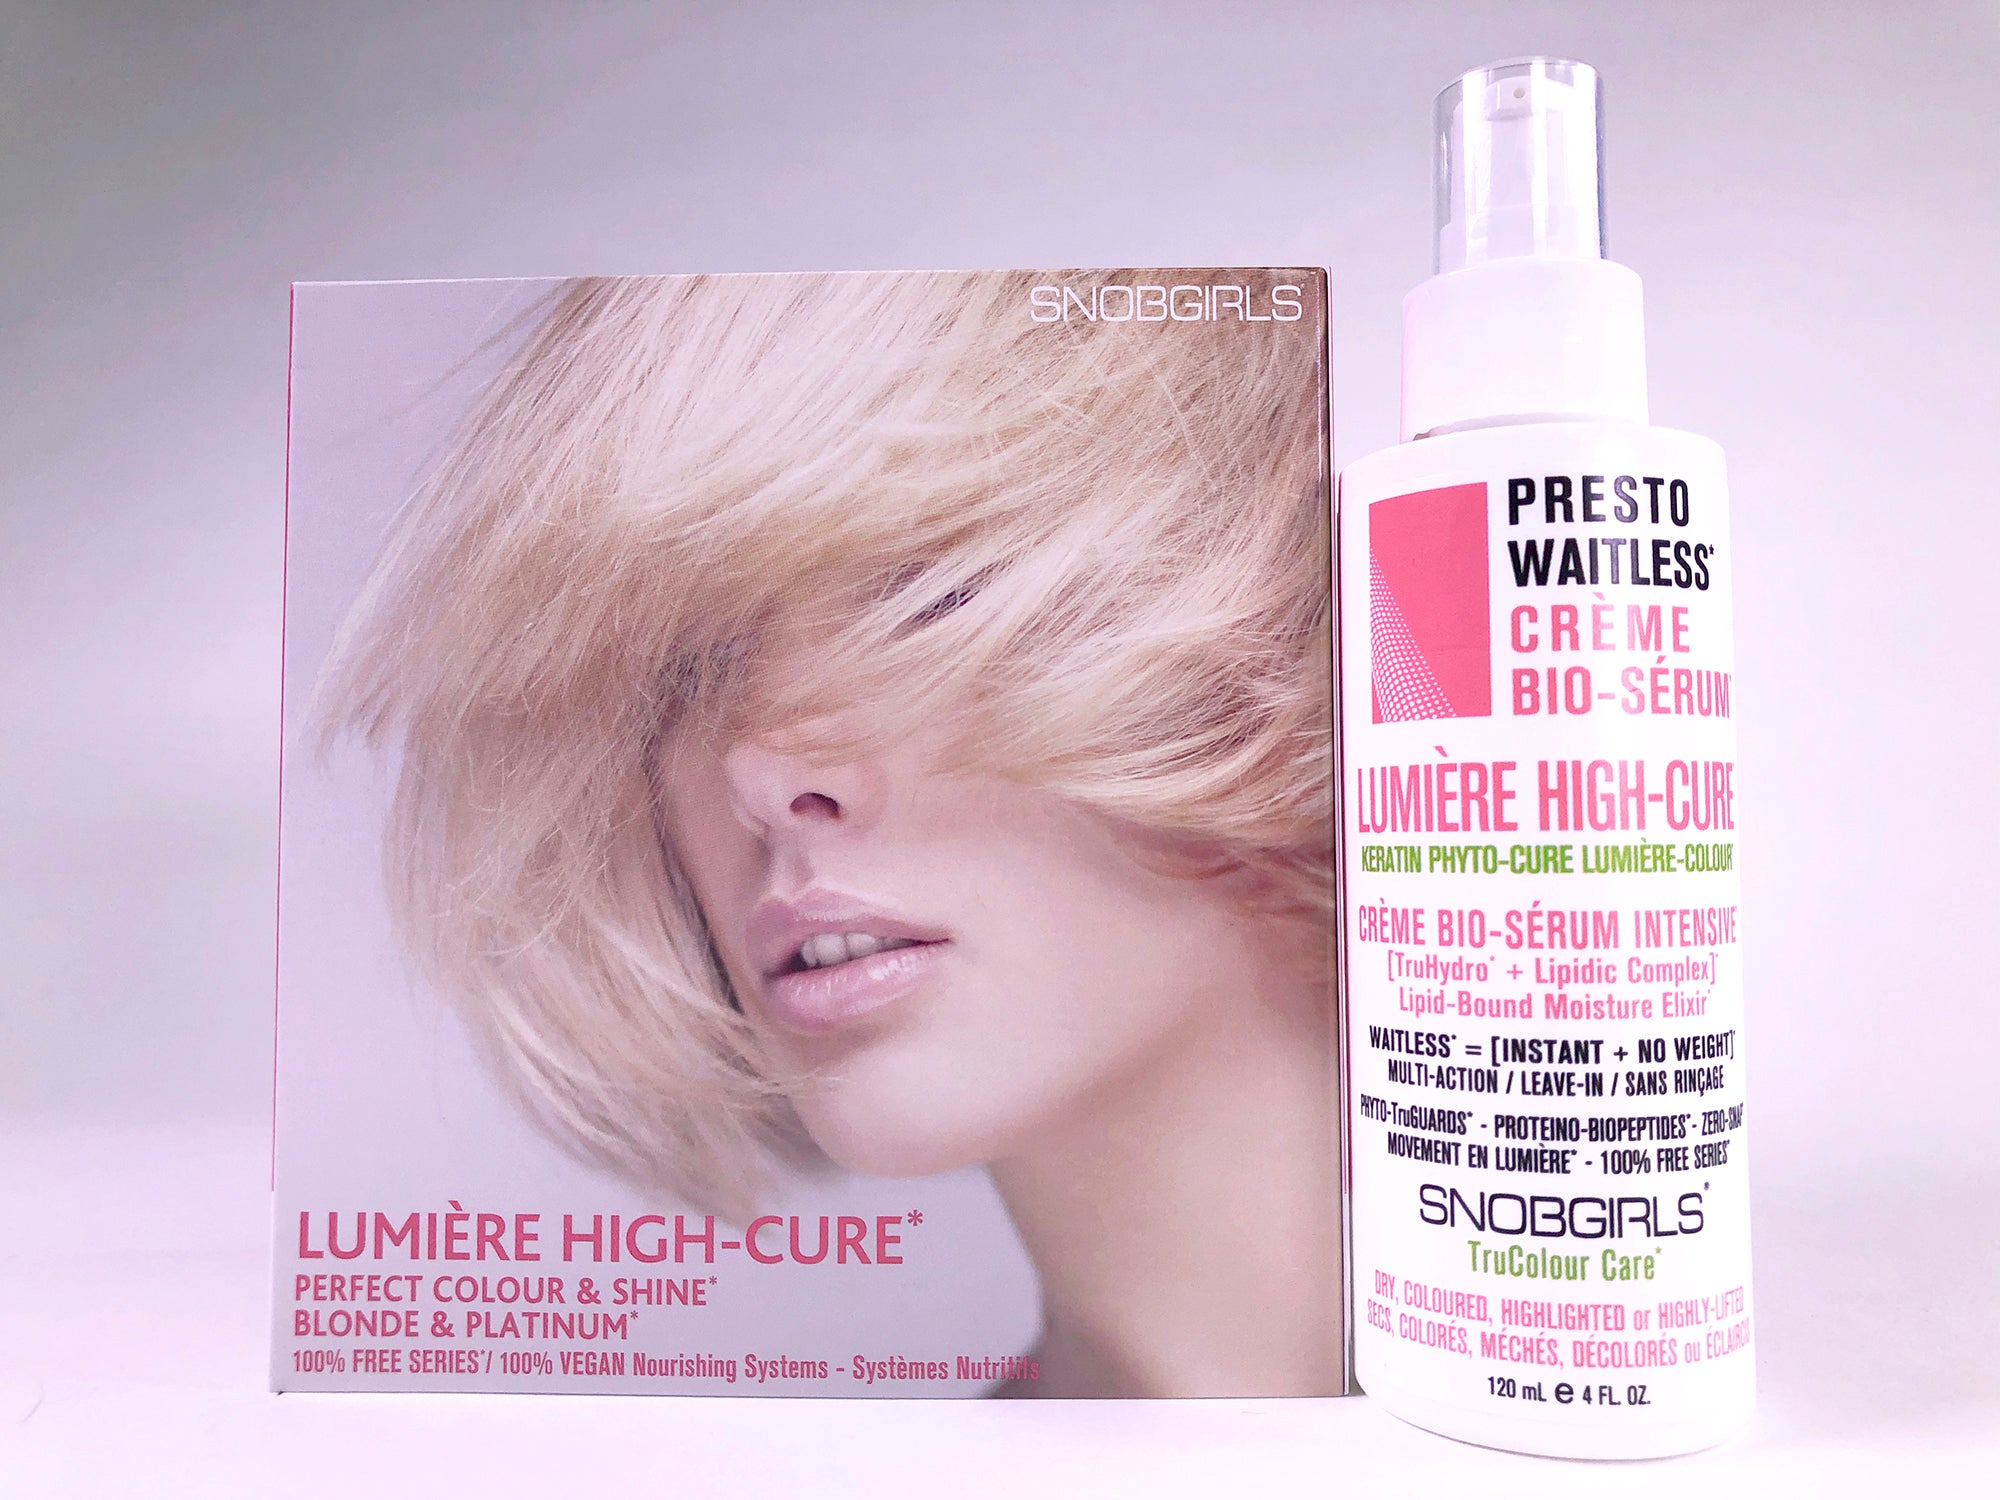 LUMIERE HIGH-CURE Perfect Colour & Shine Creme Bio-Serum - SNOBGIRLS.com